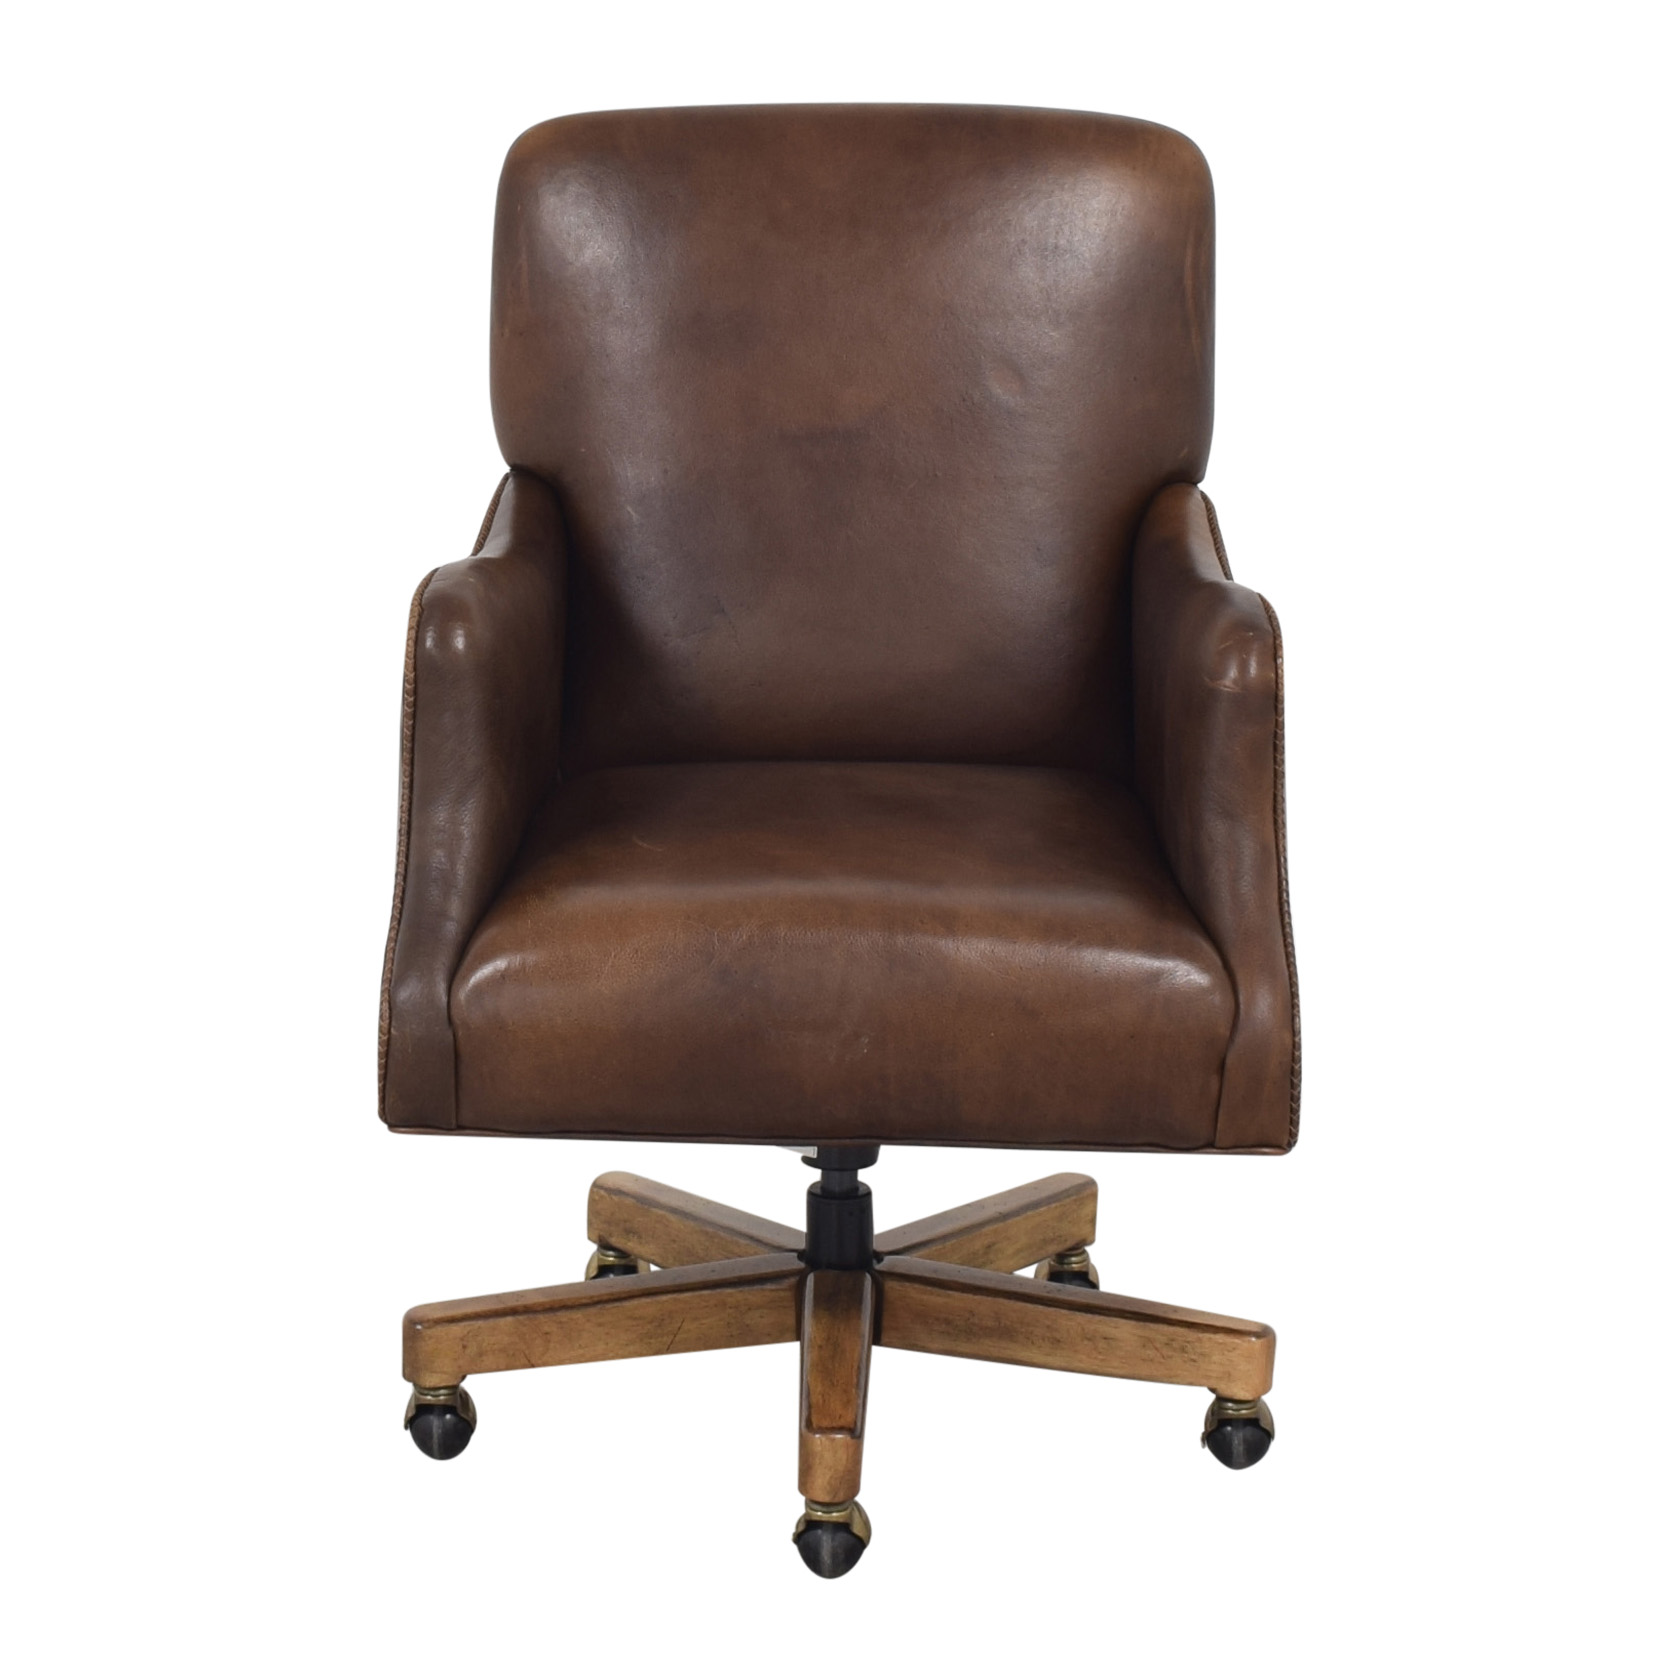 shop Hooker Furniture Office Chair Hooker Furniture Home Office Chairs